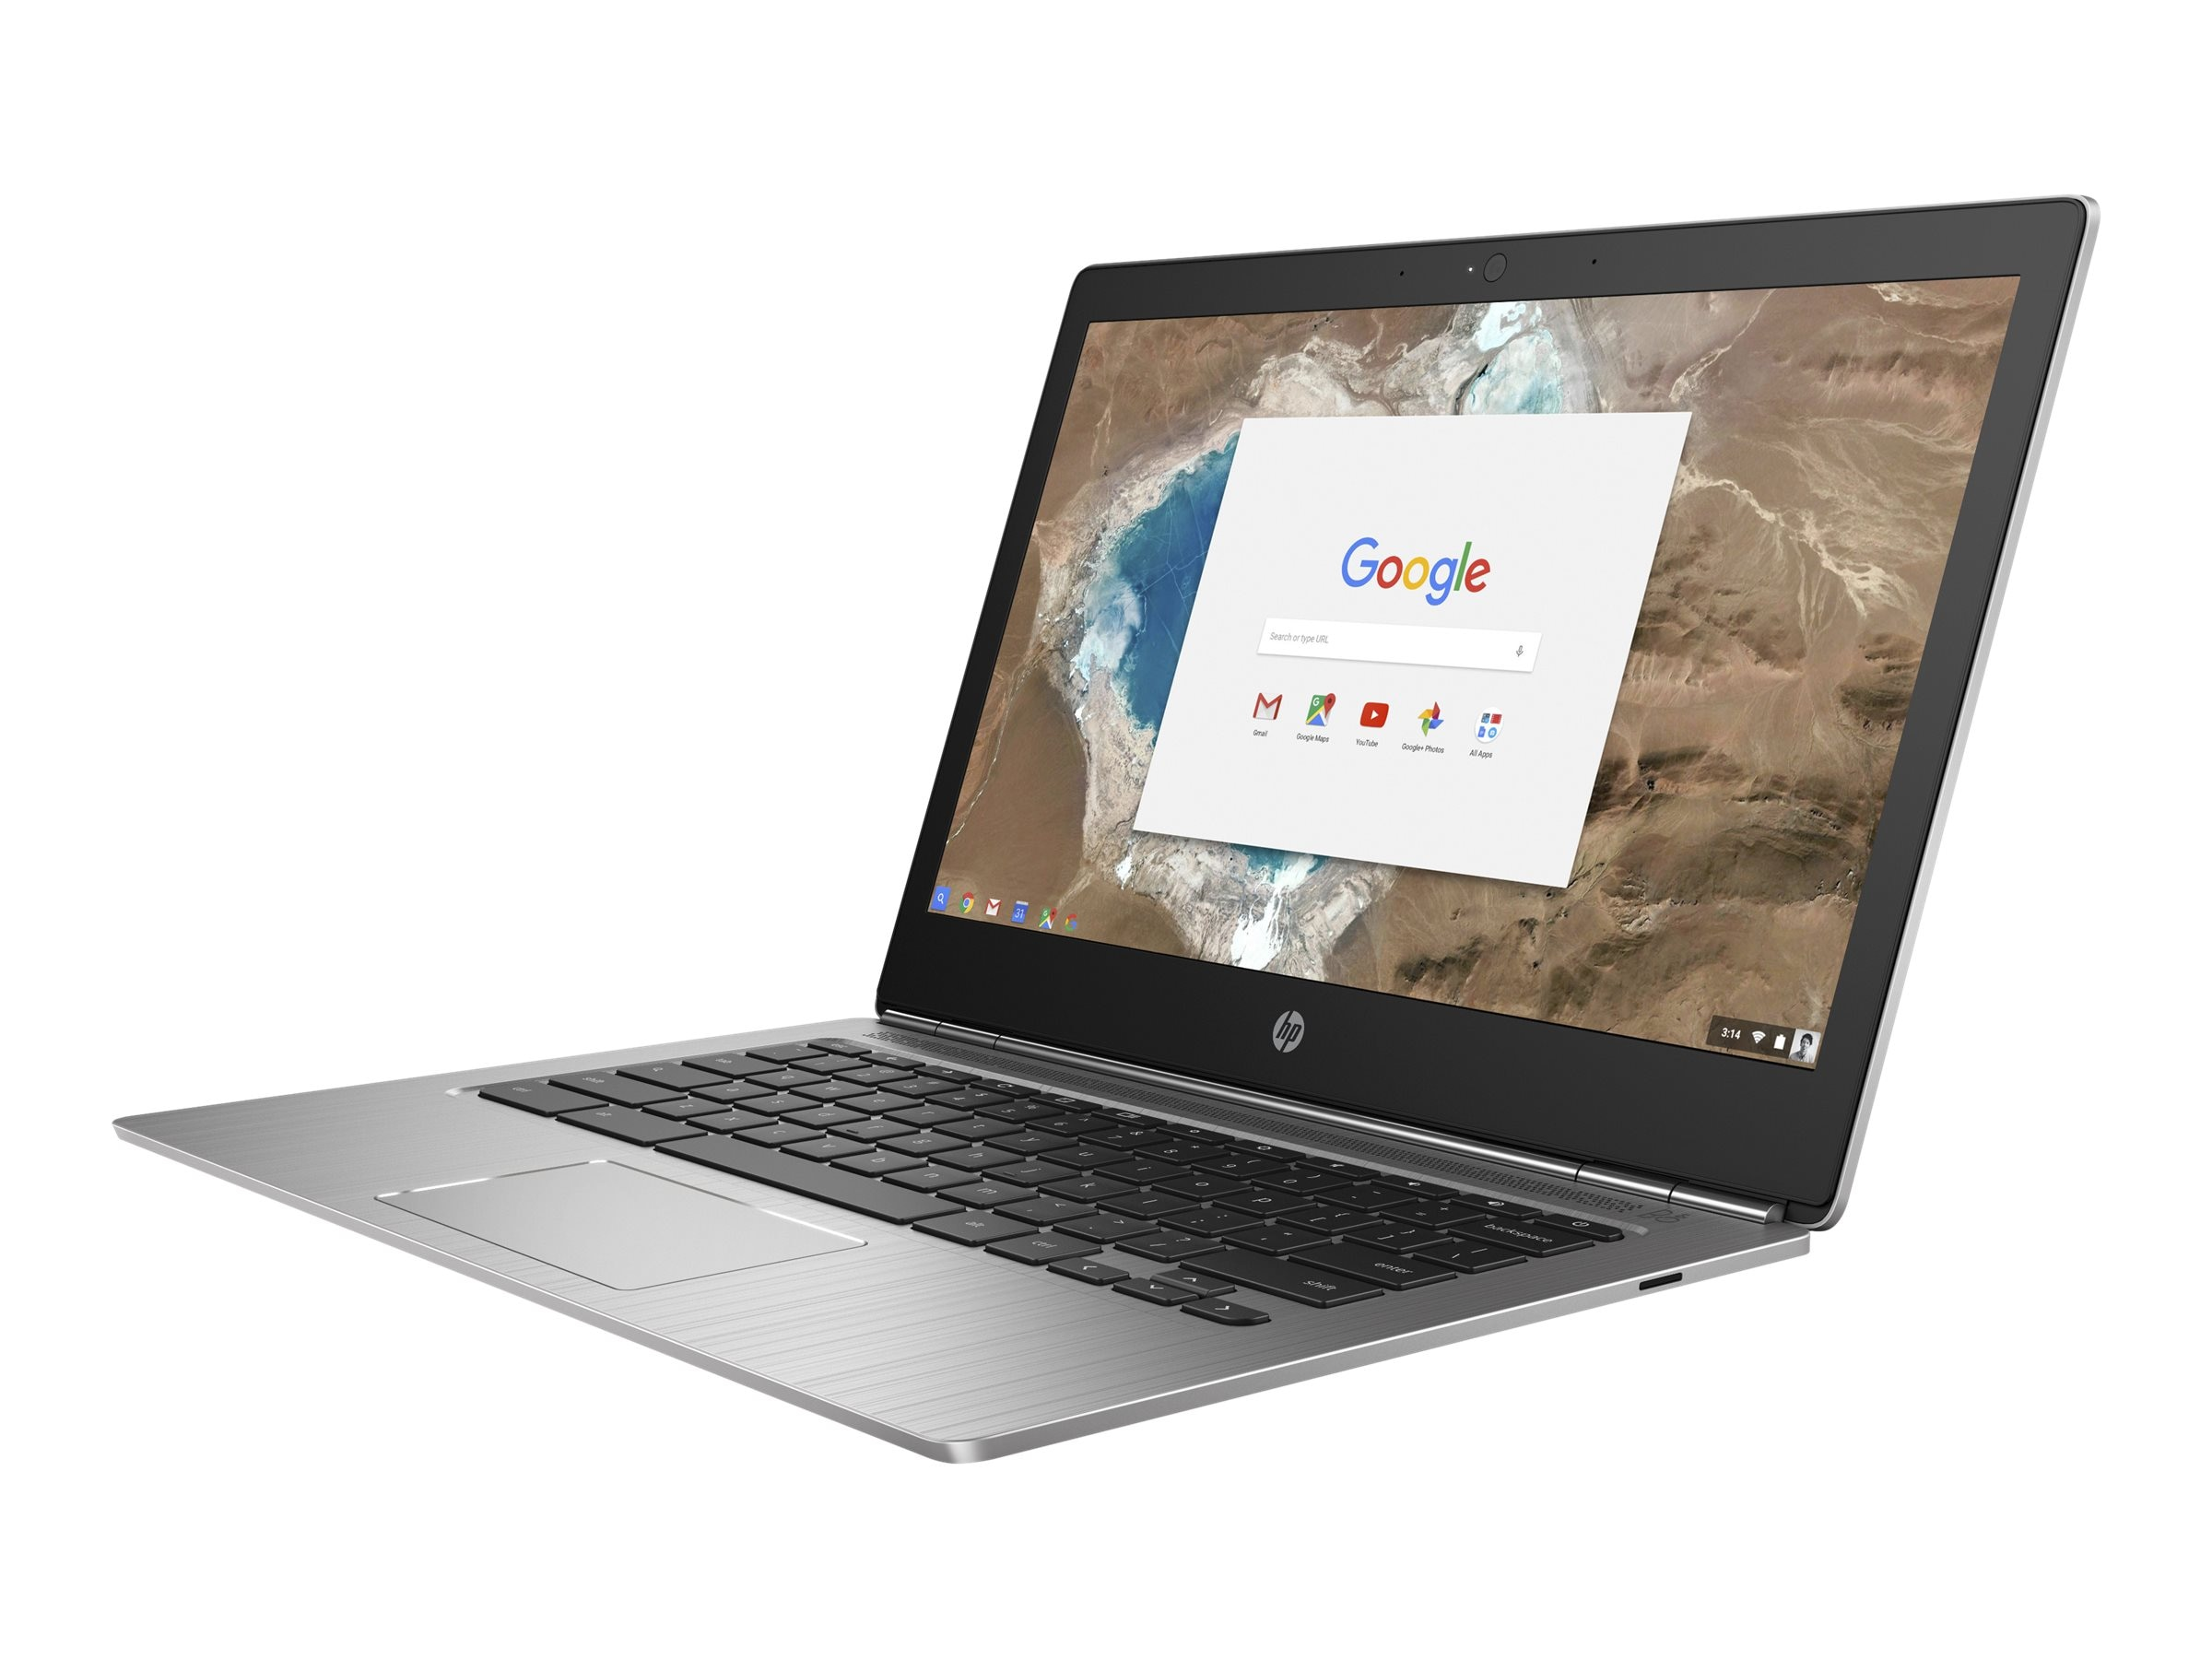 HP Chromebook 13 G1 0.9GHz Core m3 13.3in display, W0T00UT#ABA